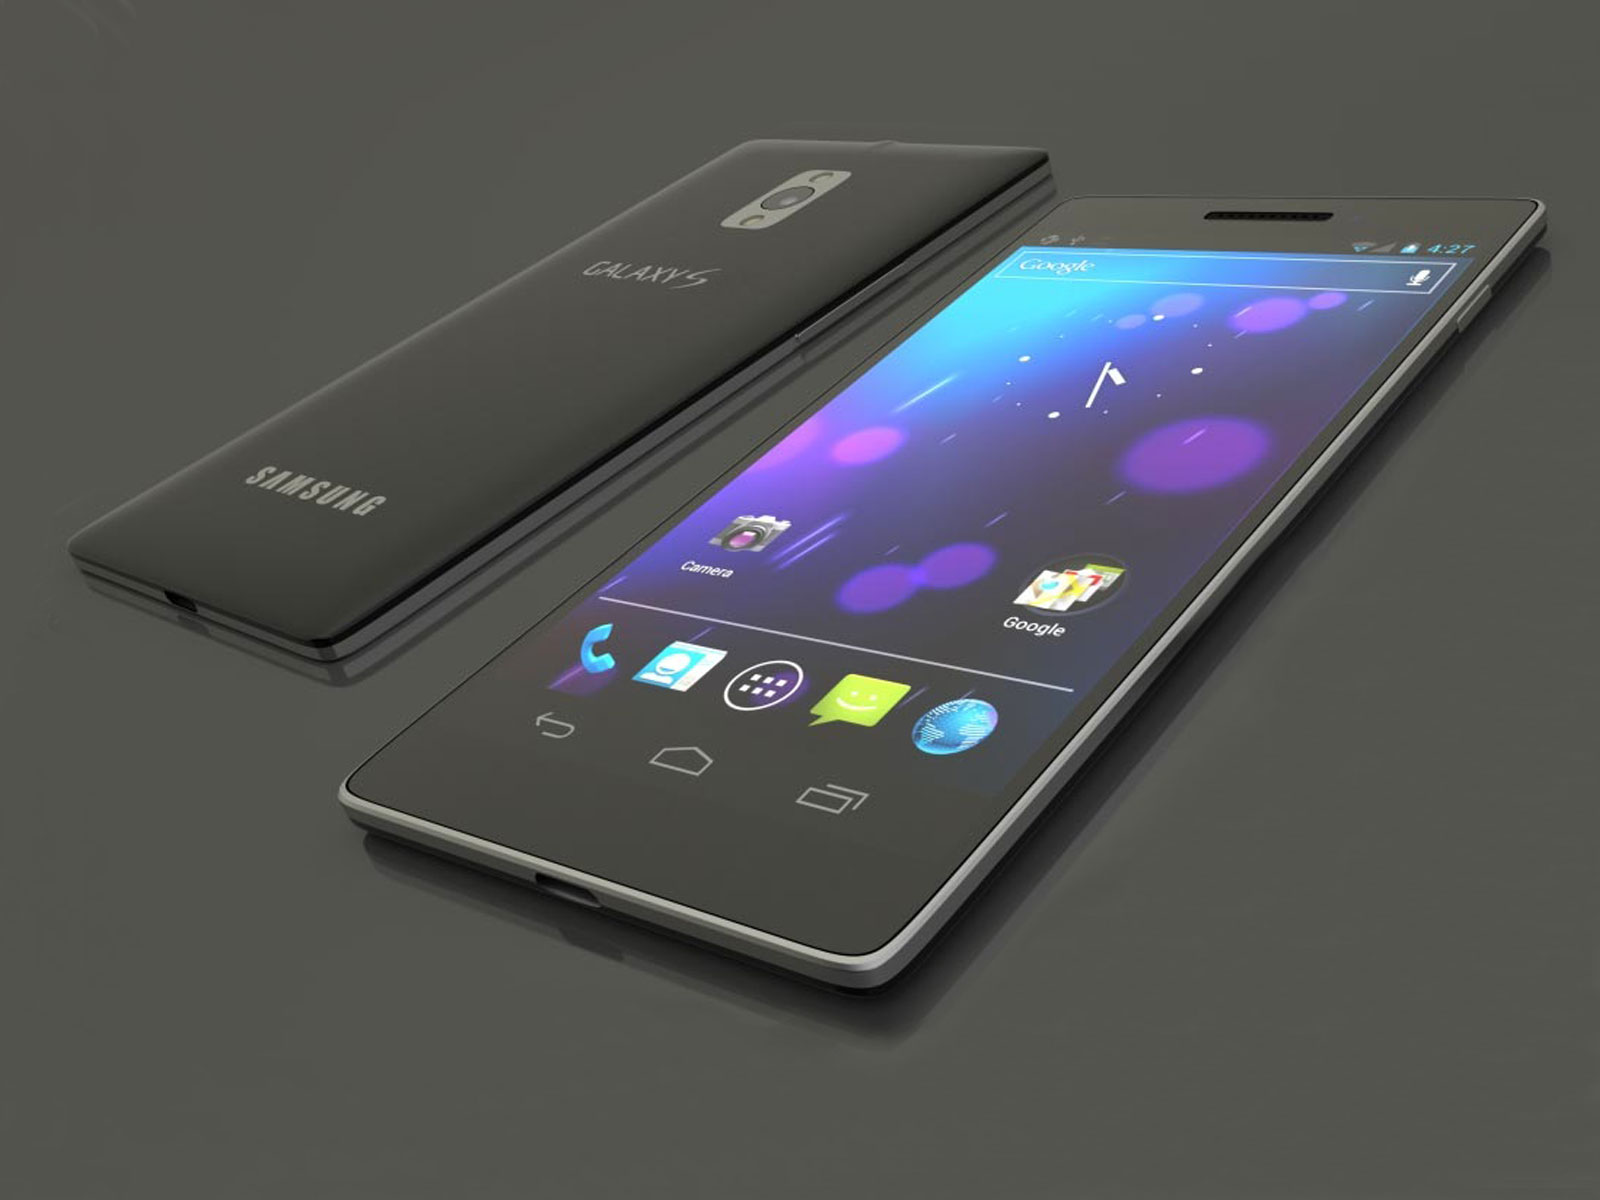 samsung galaxy s4 wallpapers hd amazing wallpapers. Black Bedroom Furniture Sets. Home Design Ideas